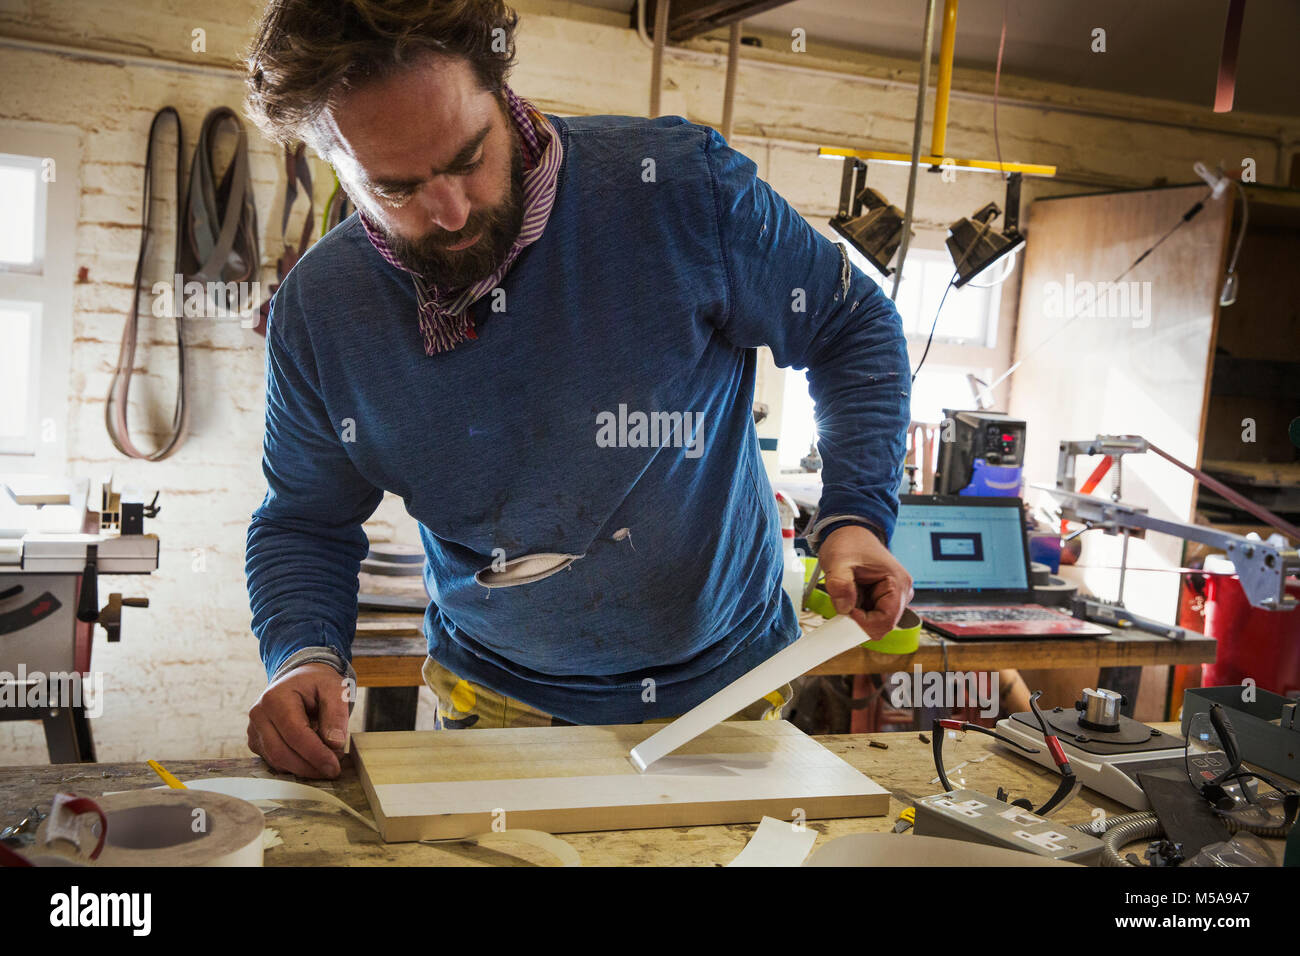 A craftsman in a workshop at a bench, stripping a protective layer off a flat wooden board. - Stock Image